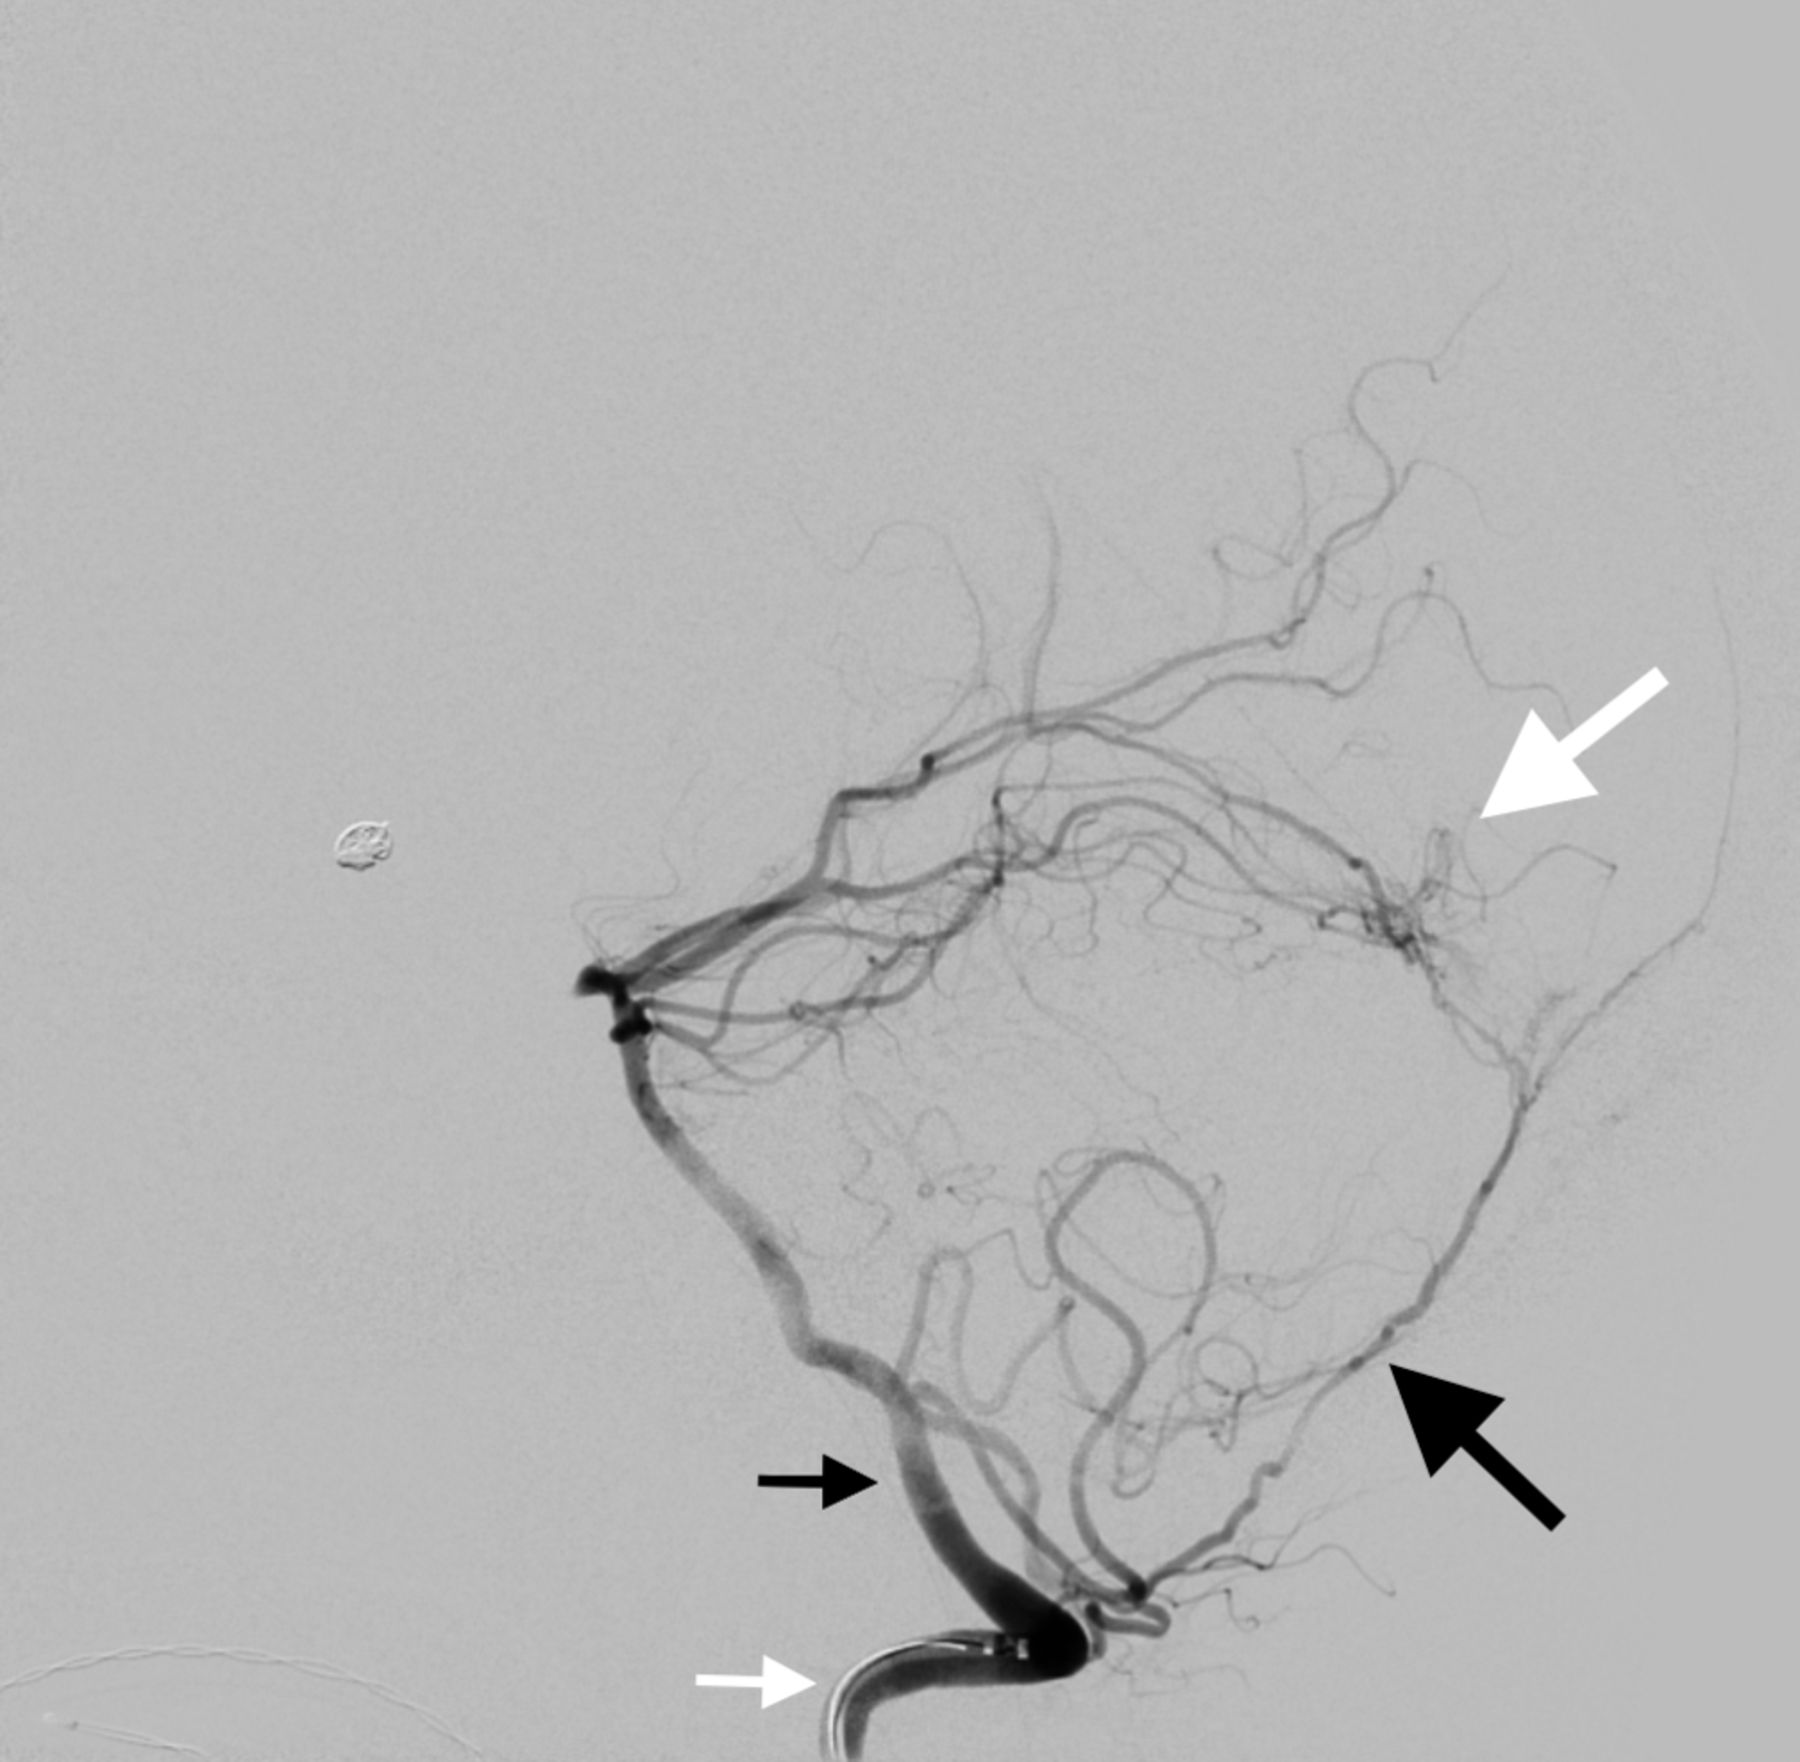 Posterior meningeal artery DMSO injection resulting in